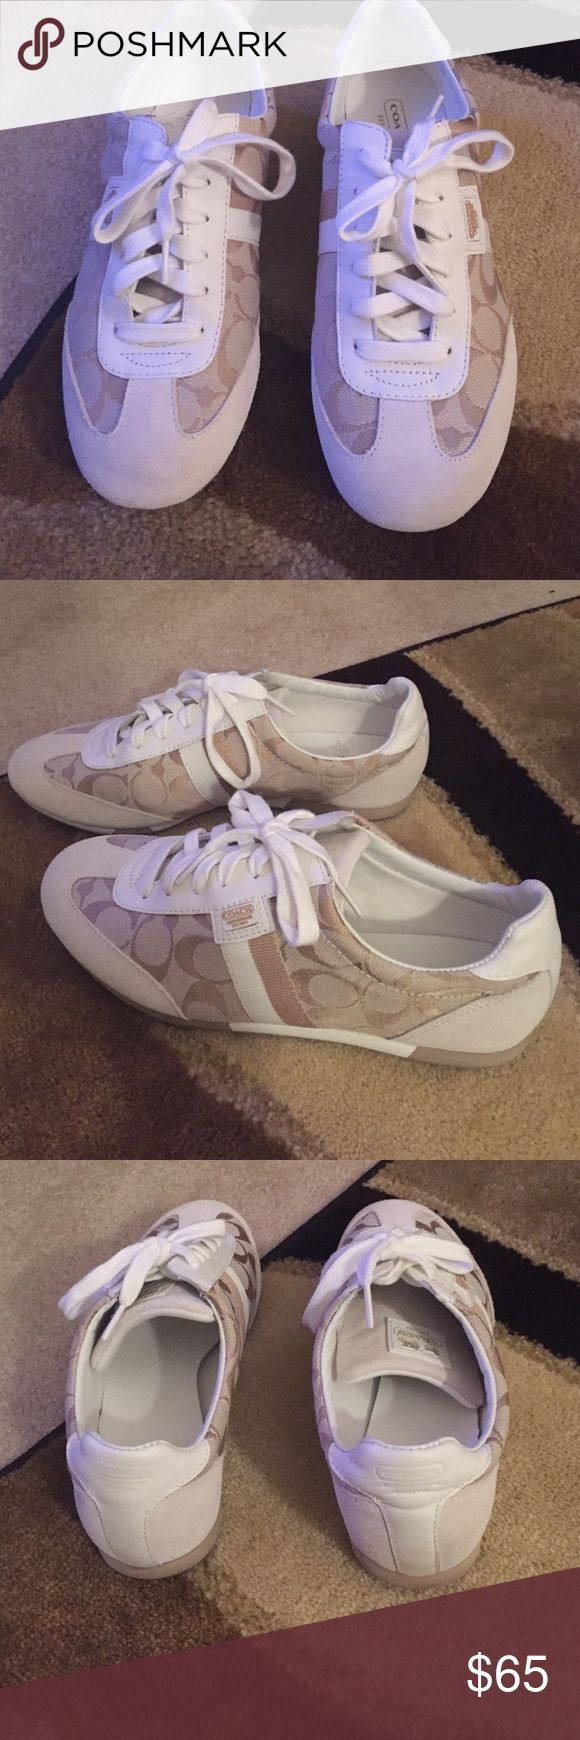 Coach Tennis Shoes Tan/white Coach tennis shoes. Coach Shoes Sneakers